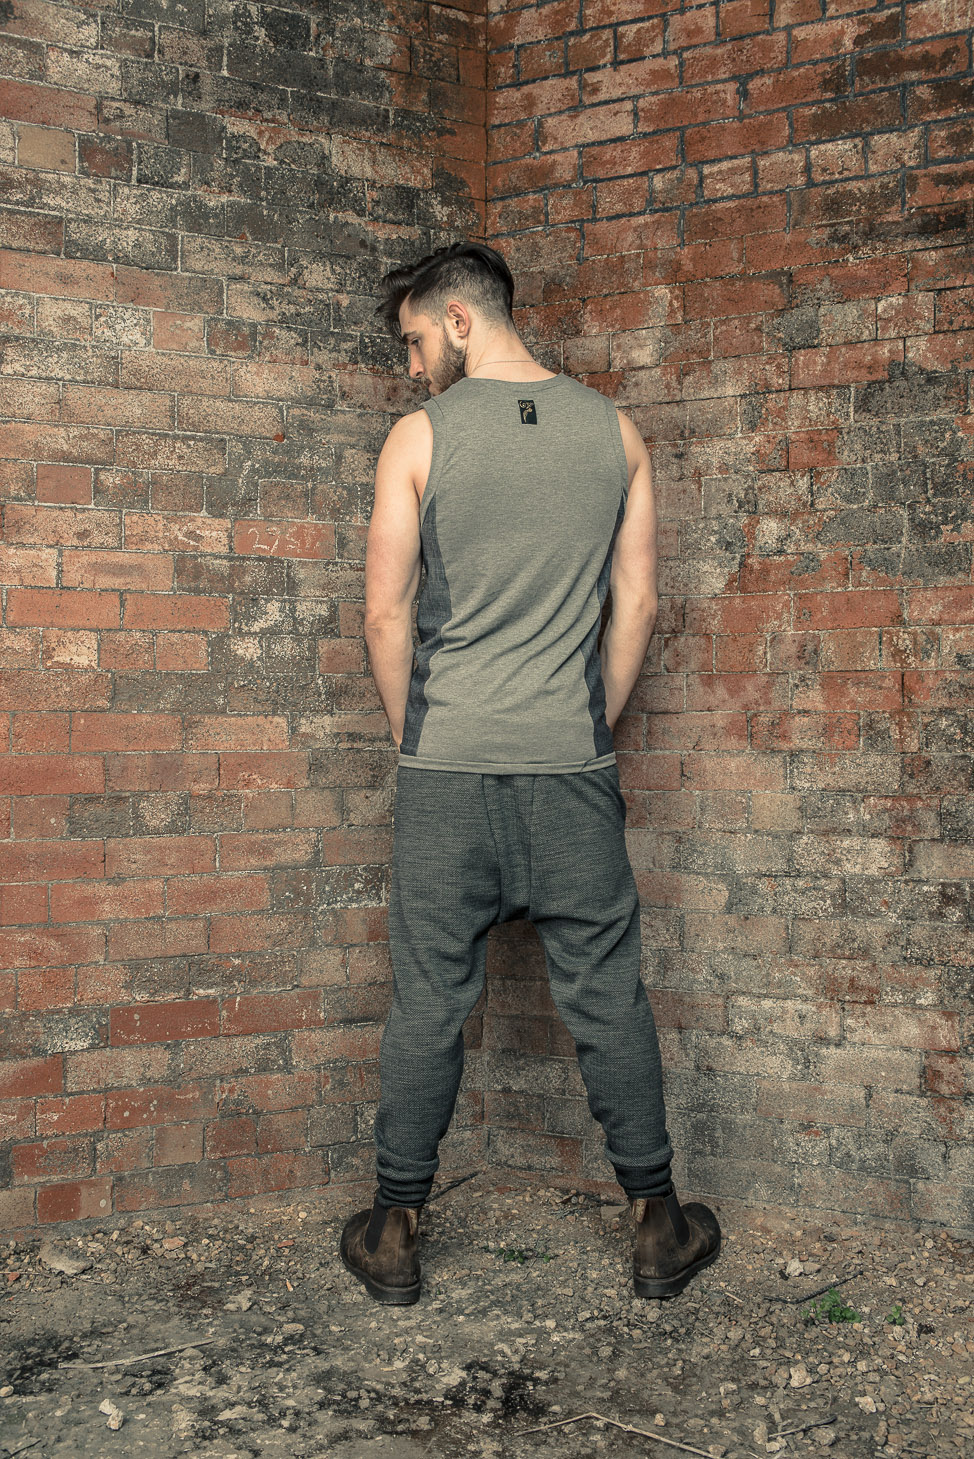 zaramia-ava-zaramiaava-leeds-fashion-designer-ethical-sustainable-tailored-minimalist-stripe-fitted-versatile-drape-grey-tshirt-top-vest-hareem-trousers-black-grey-texture-styling-8